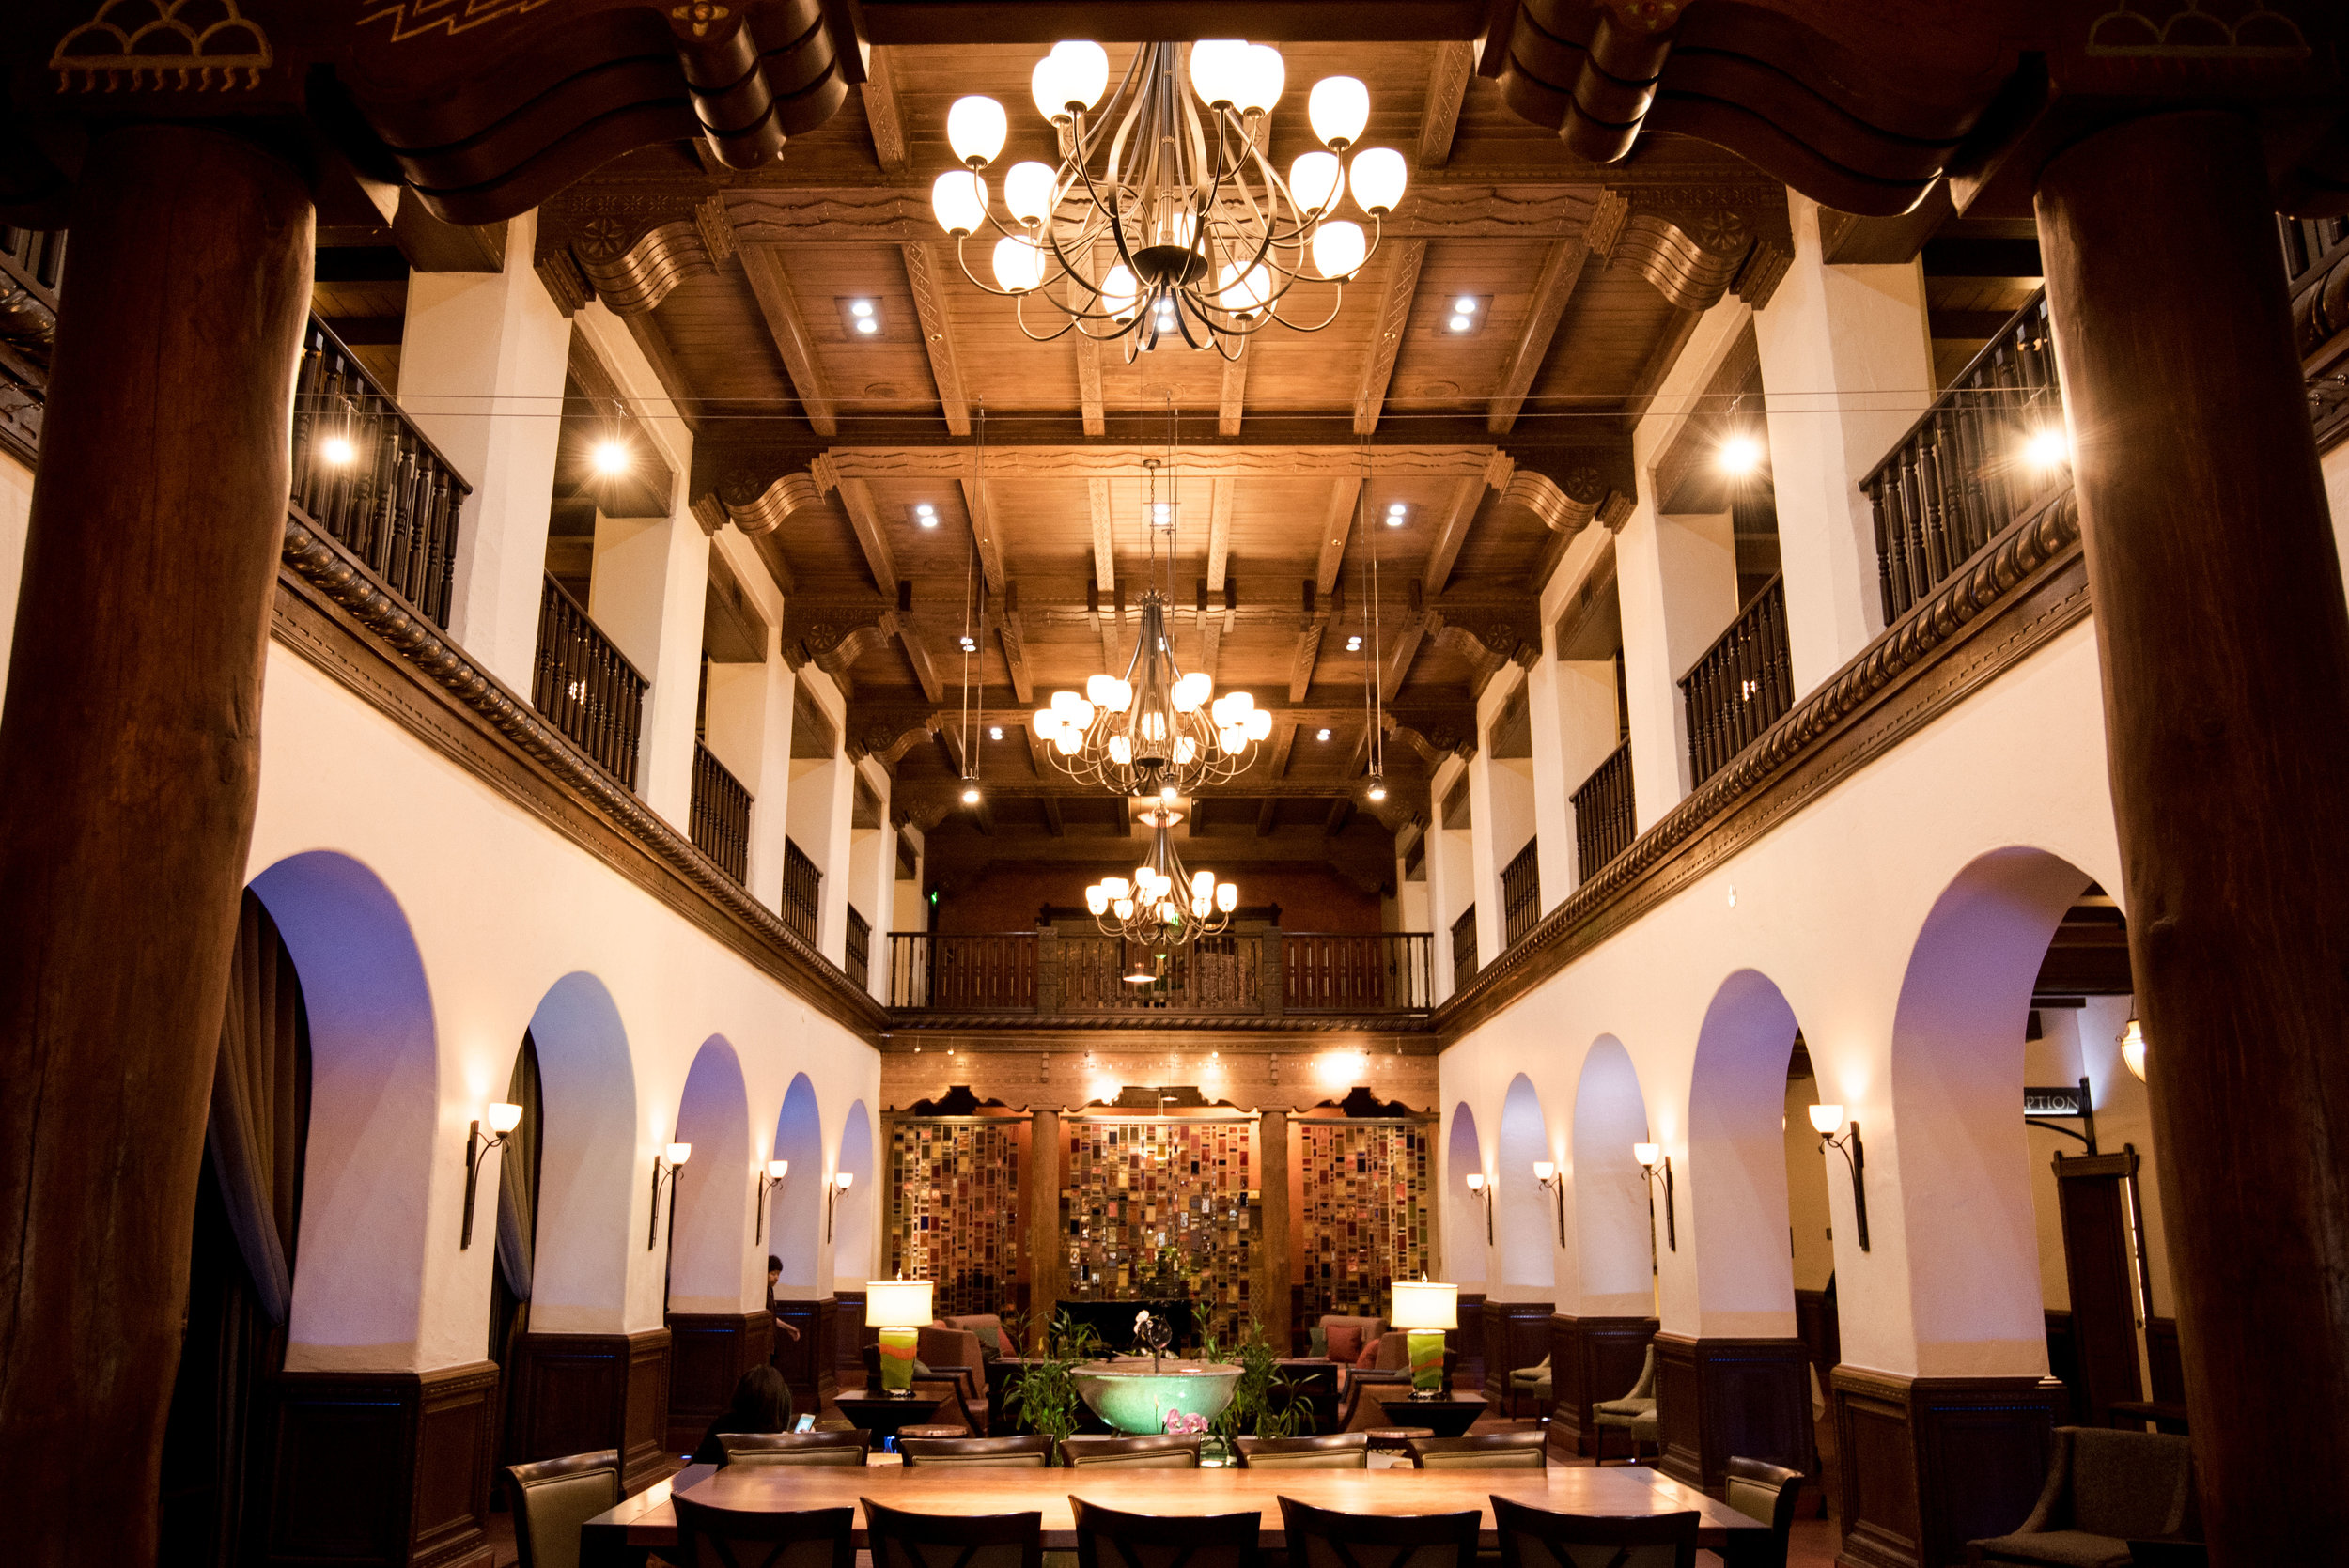 The lobby of the Andaluz